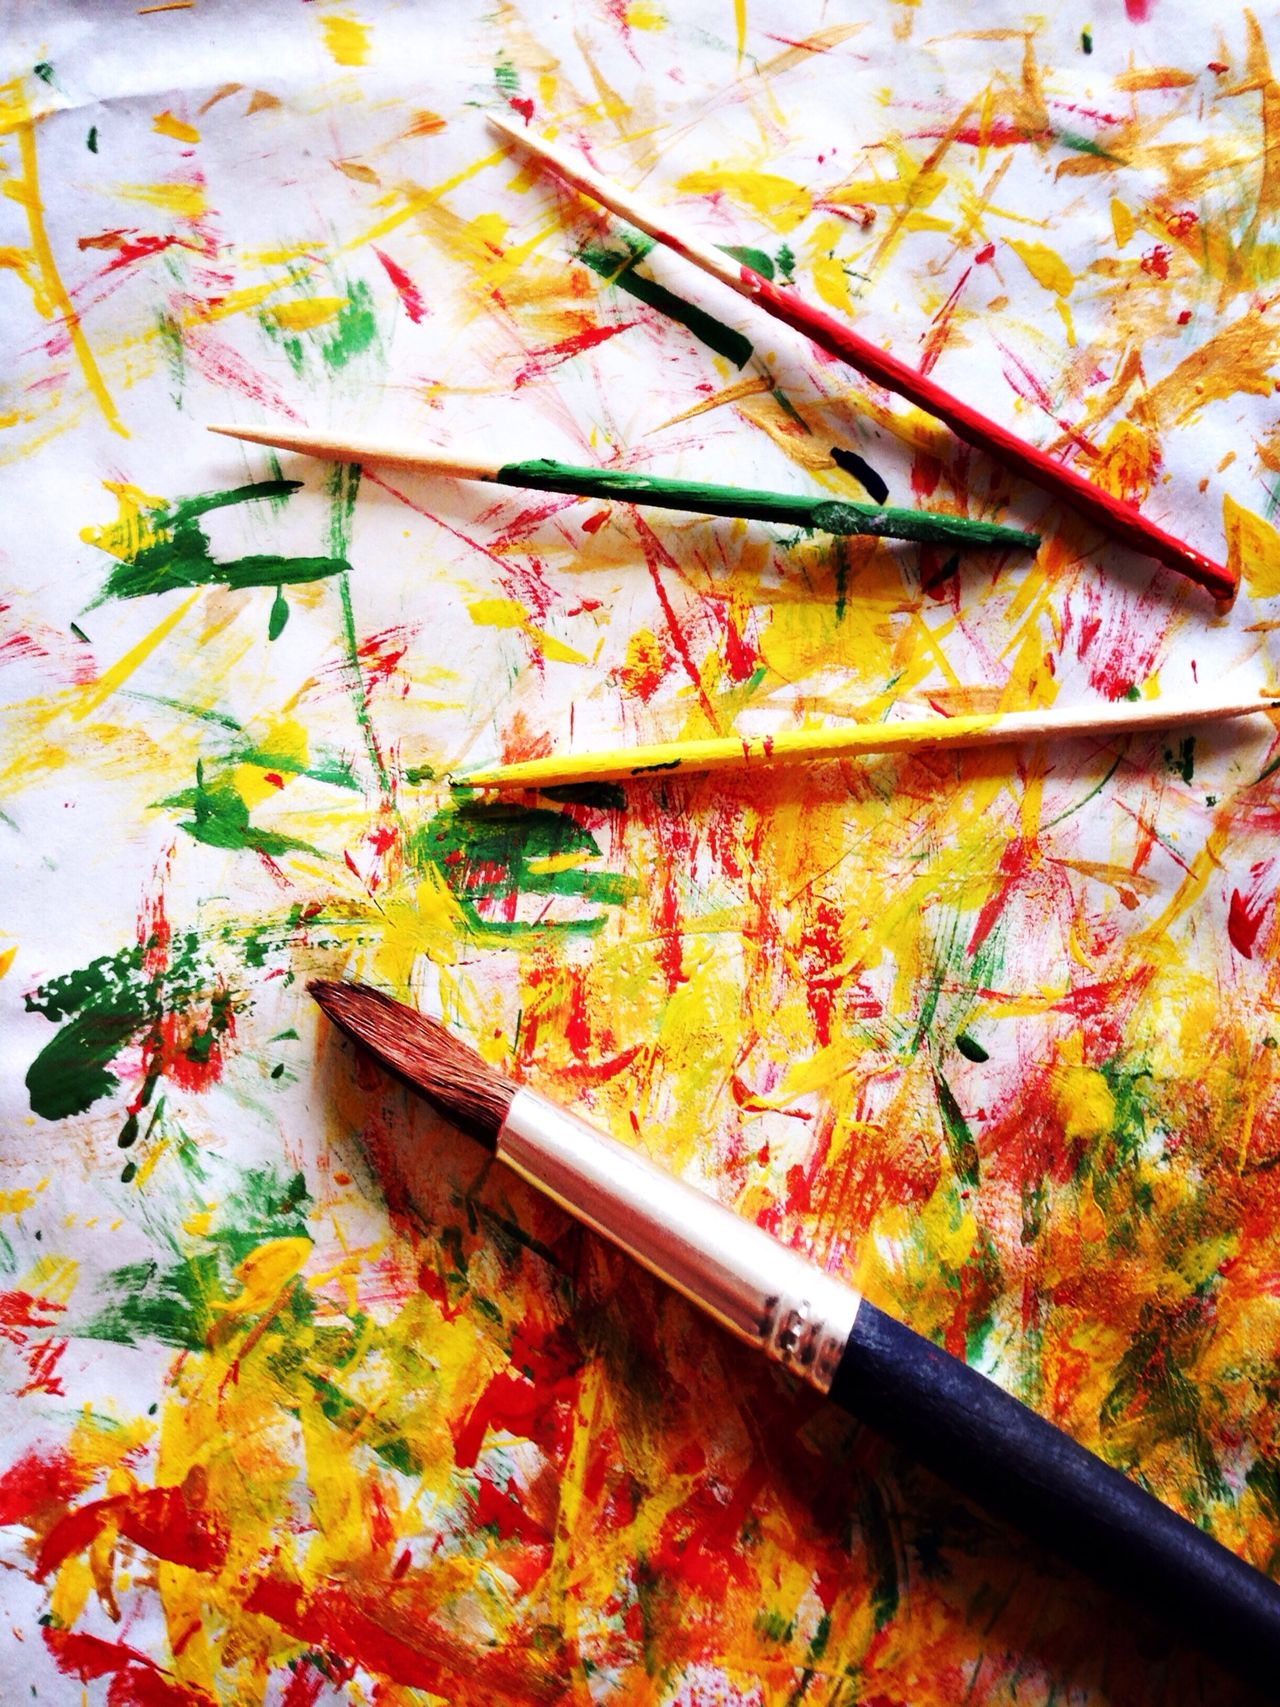 Painting Creativity Painting Colorful Colours Colourful Paintbrush Painterly